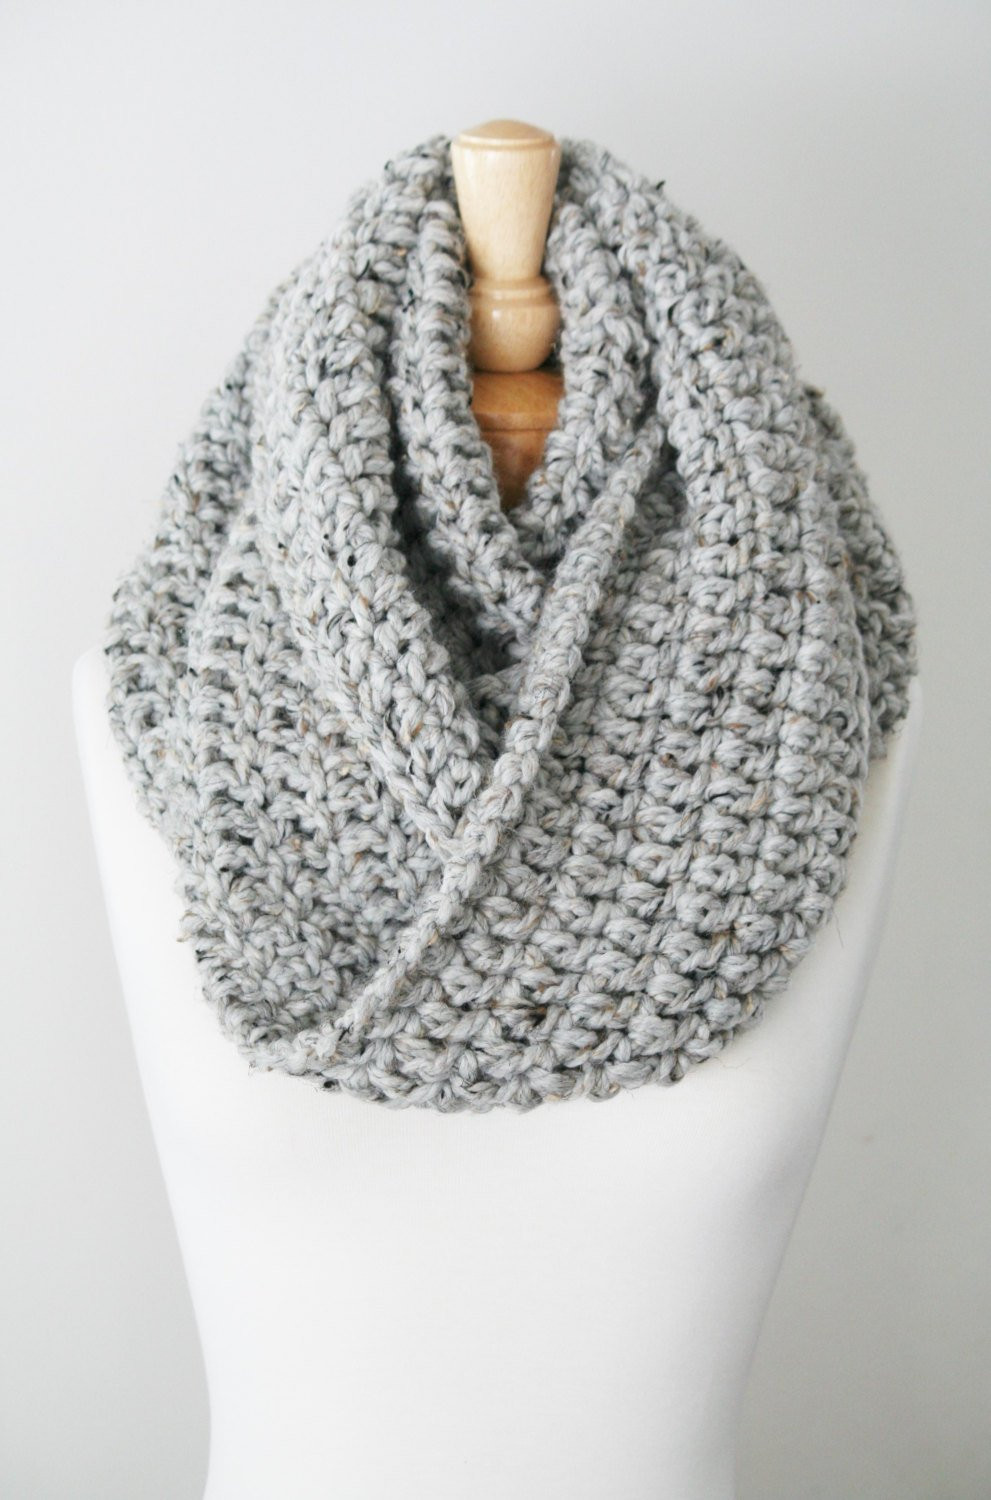 Best Of Wool Blend Knitted Scarf Chunky Knit Infinity Oversized Chunky Knit Scarf Of Top 50 Photos Chunky Knit Scarf